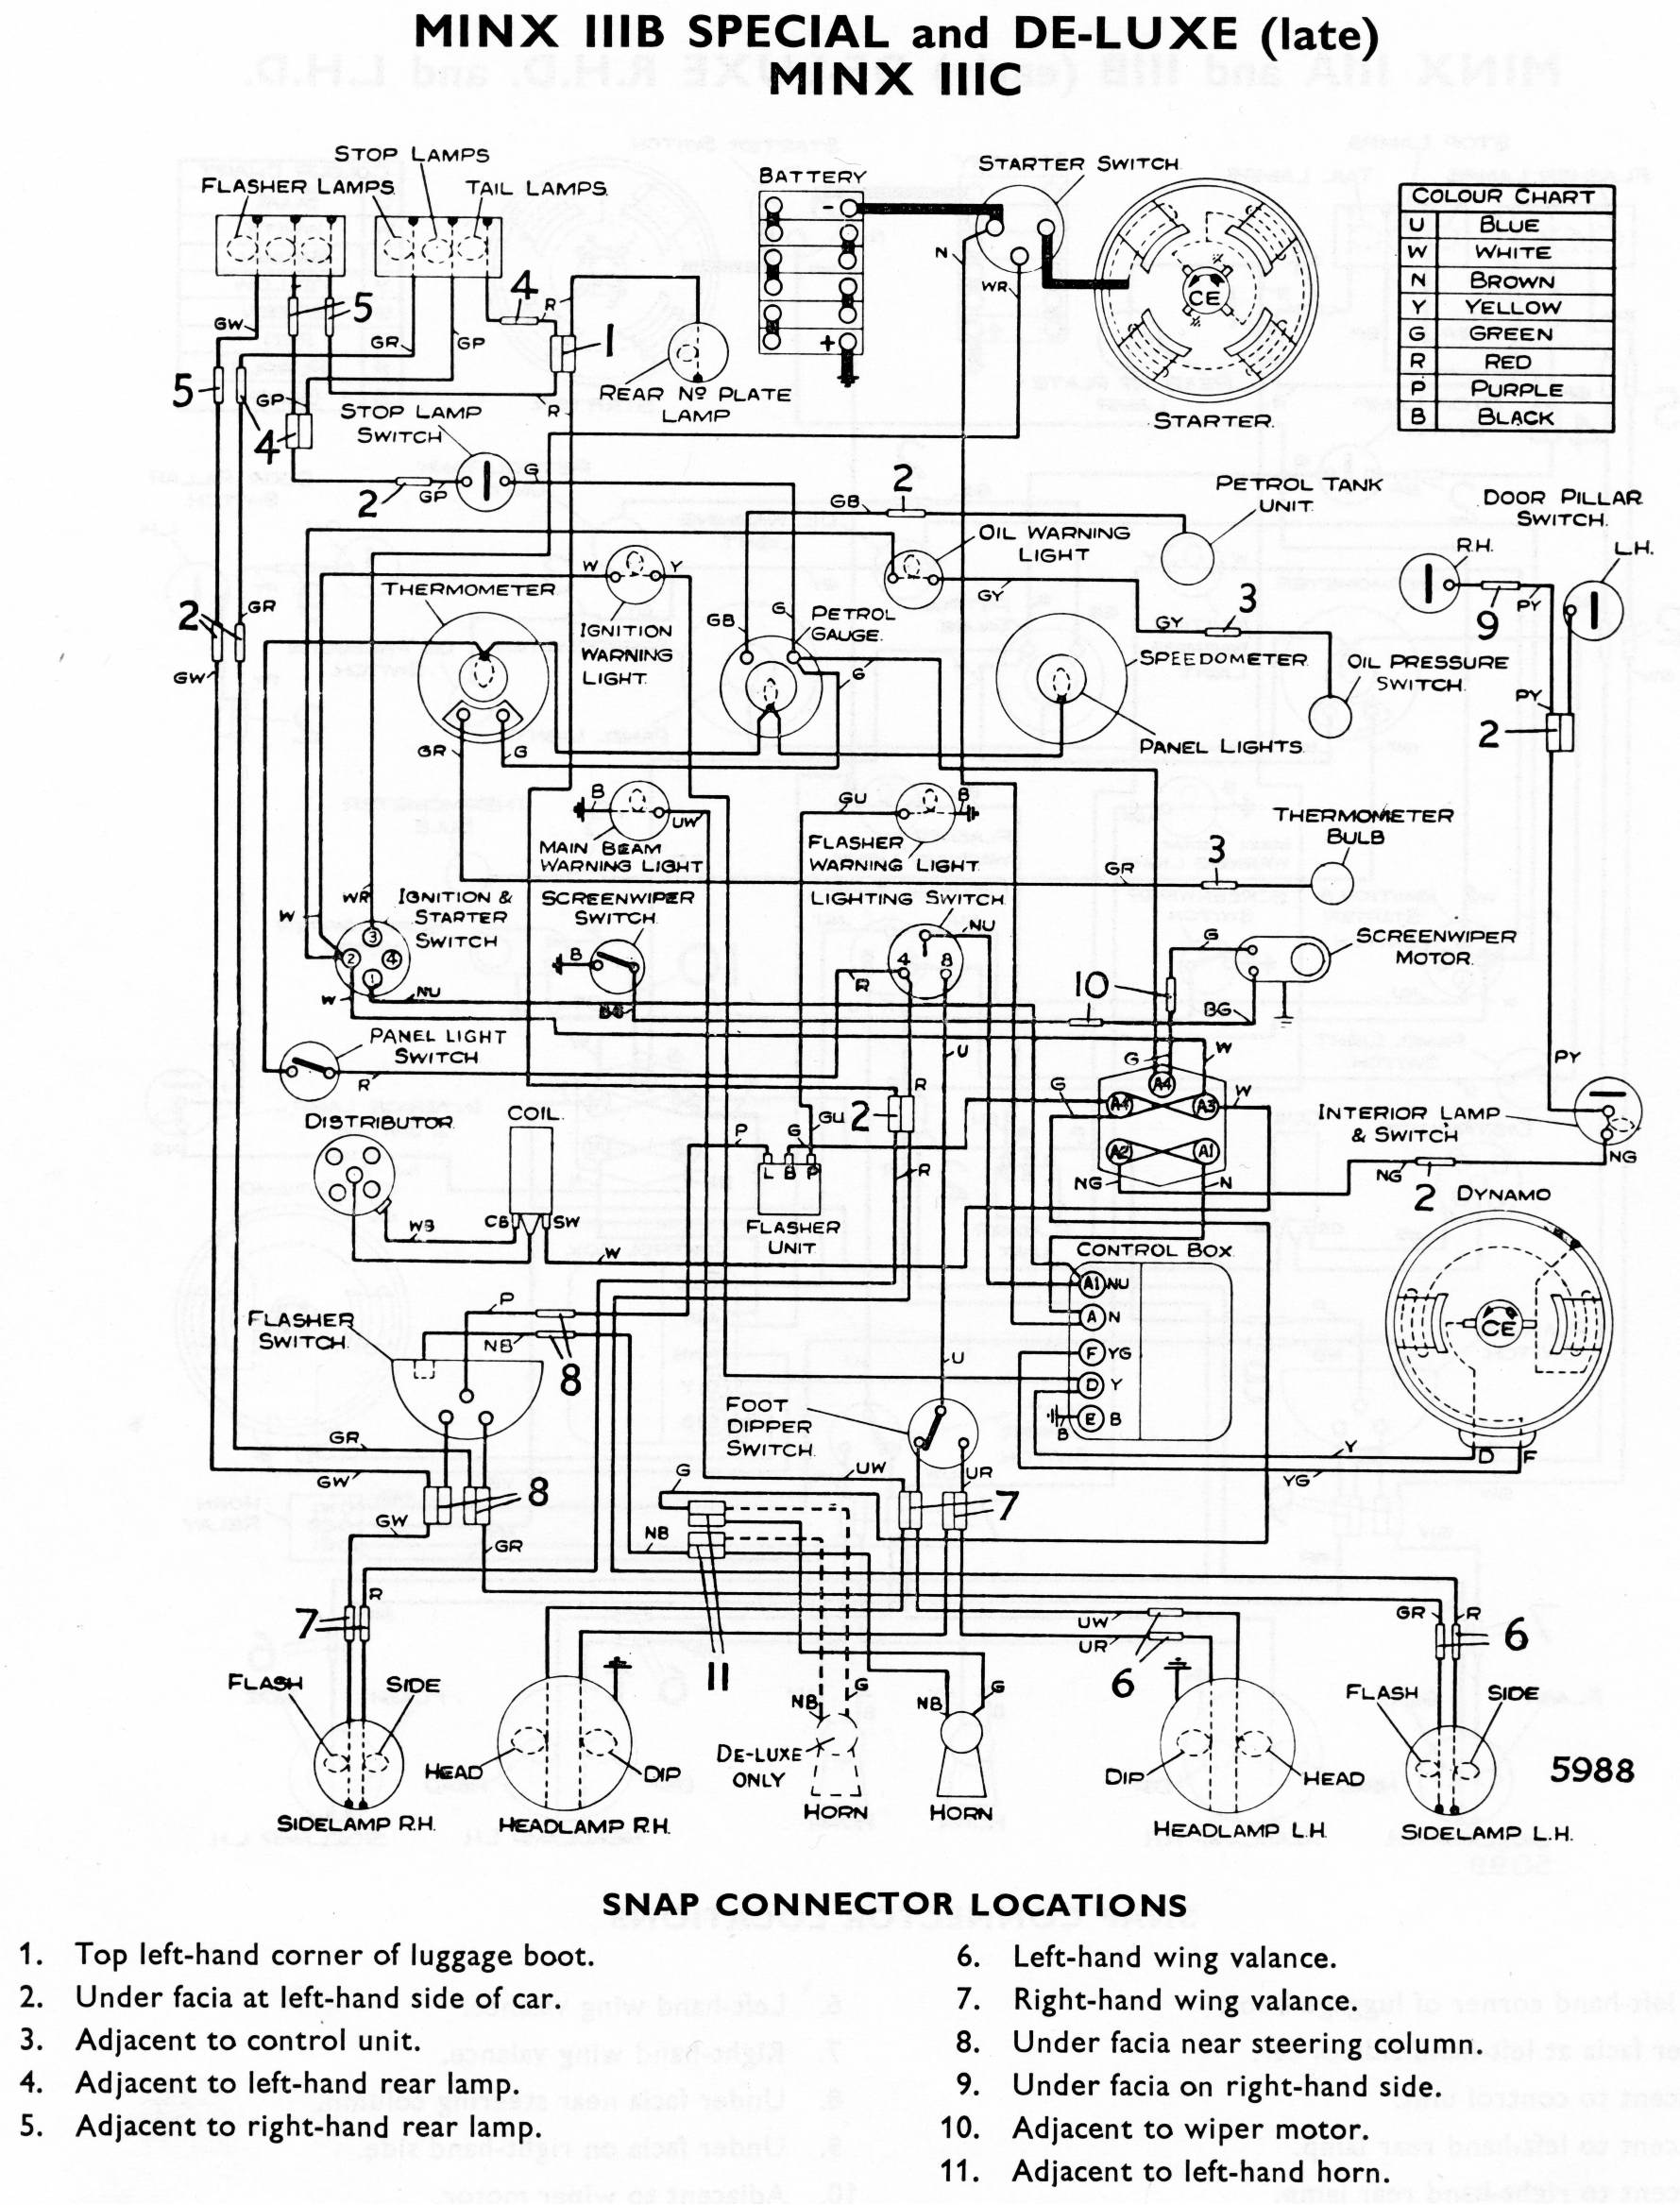 Hillman Car Club Of South Australia Wiring Diagrams Schematics In Series Snap Connector Locations For Minx V Husky Cob Iii